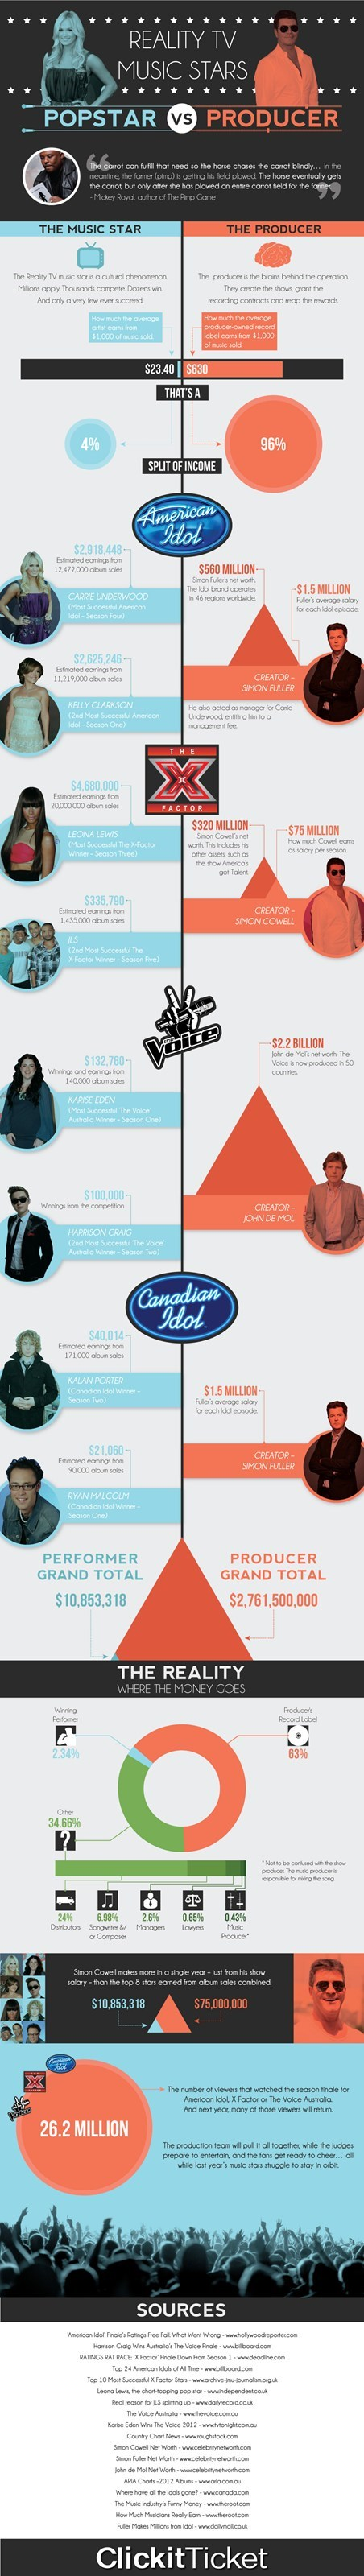 Reality TV Music Stars - Pop Star vs Producer [Infographic]